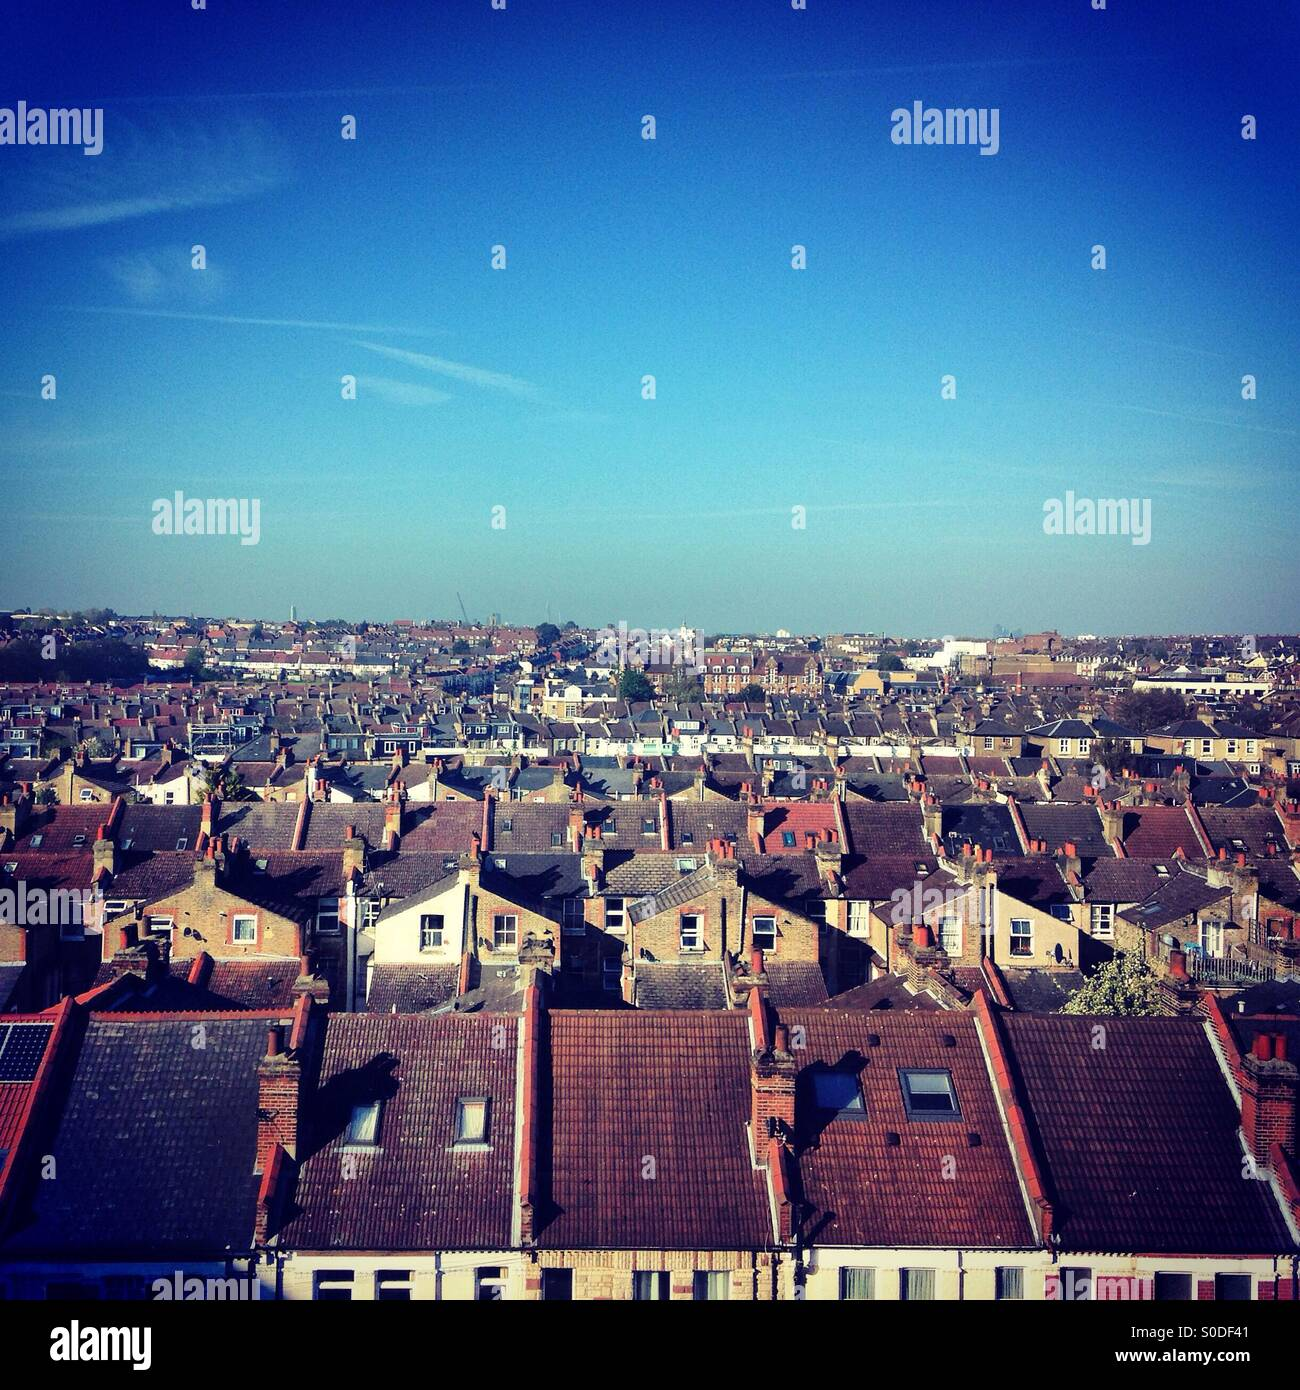 View from St George's hospital looking towards Tooting, London - Stock Image